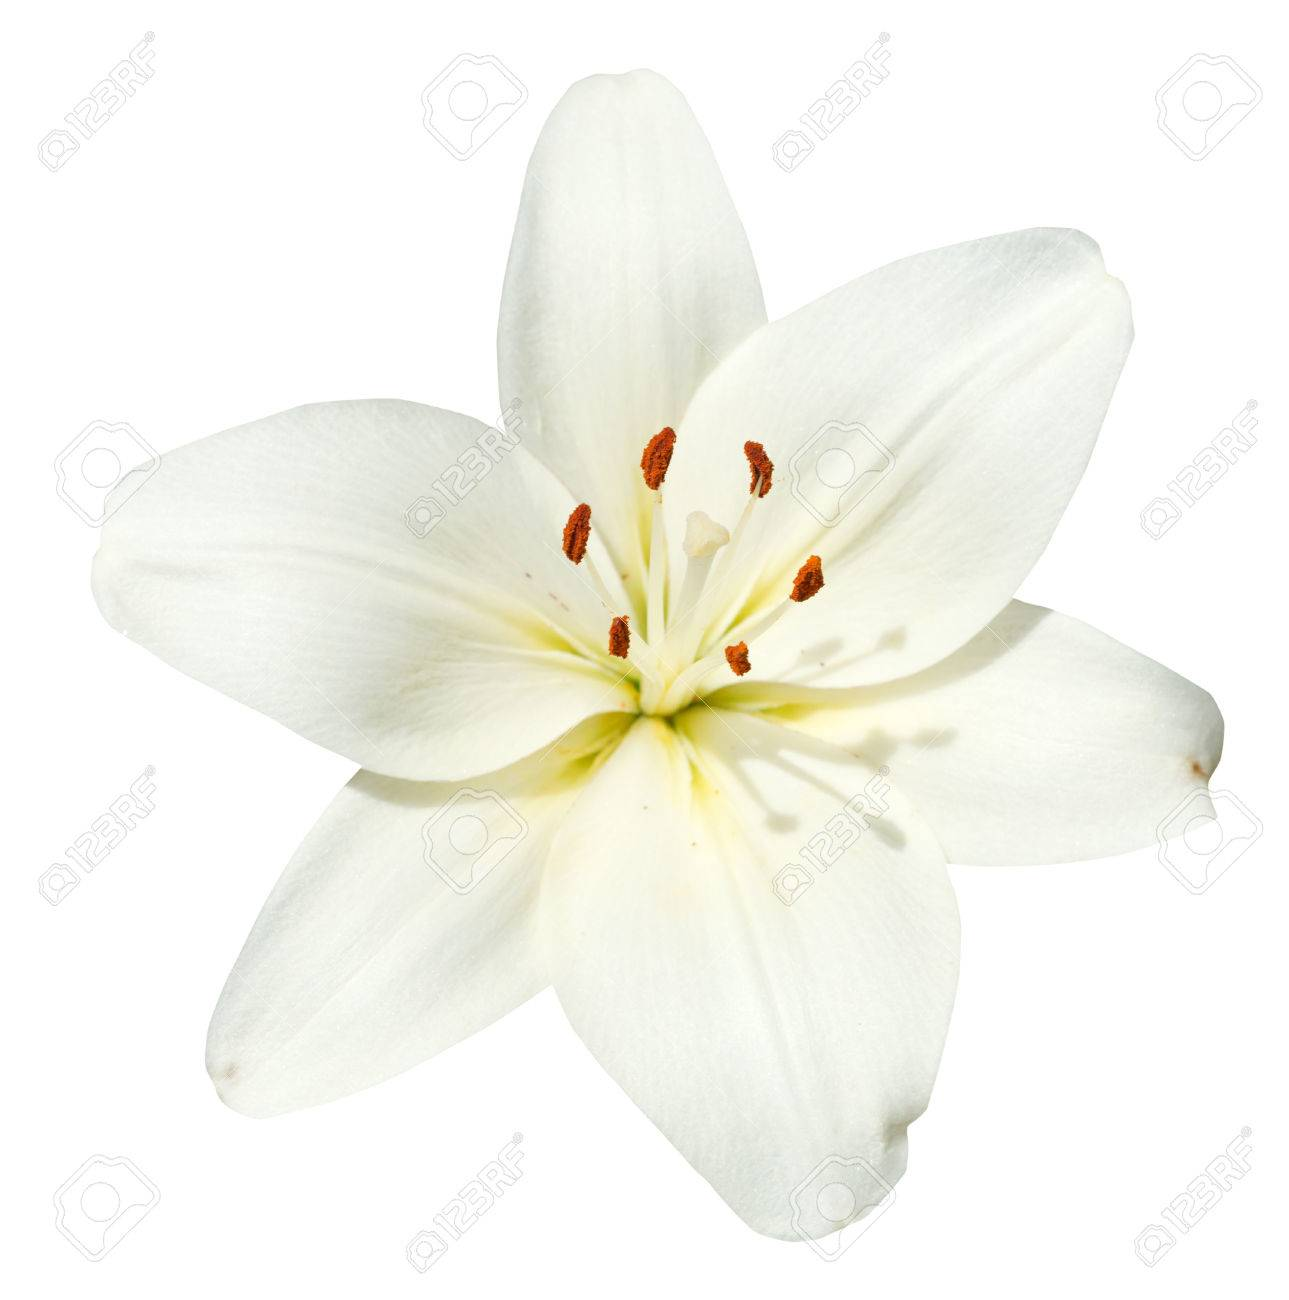 White flower lilium candidum isolated on white background stock stock photo white flower lilium candidum isolated on white background mightylinksfo